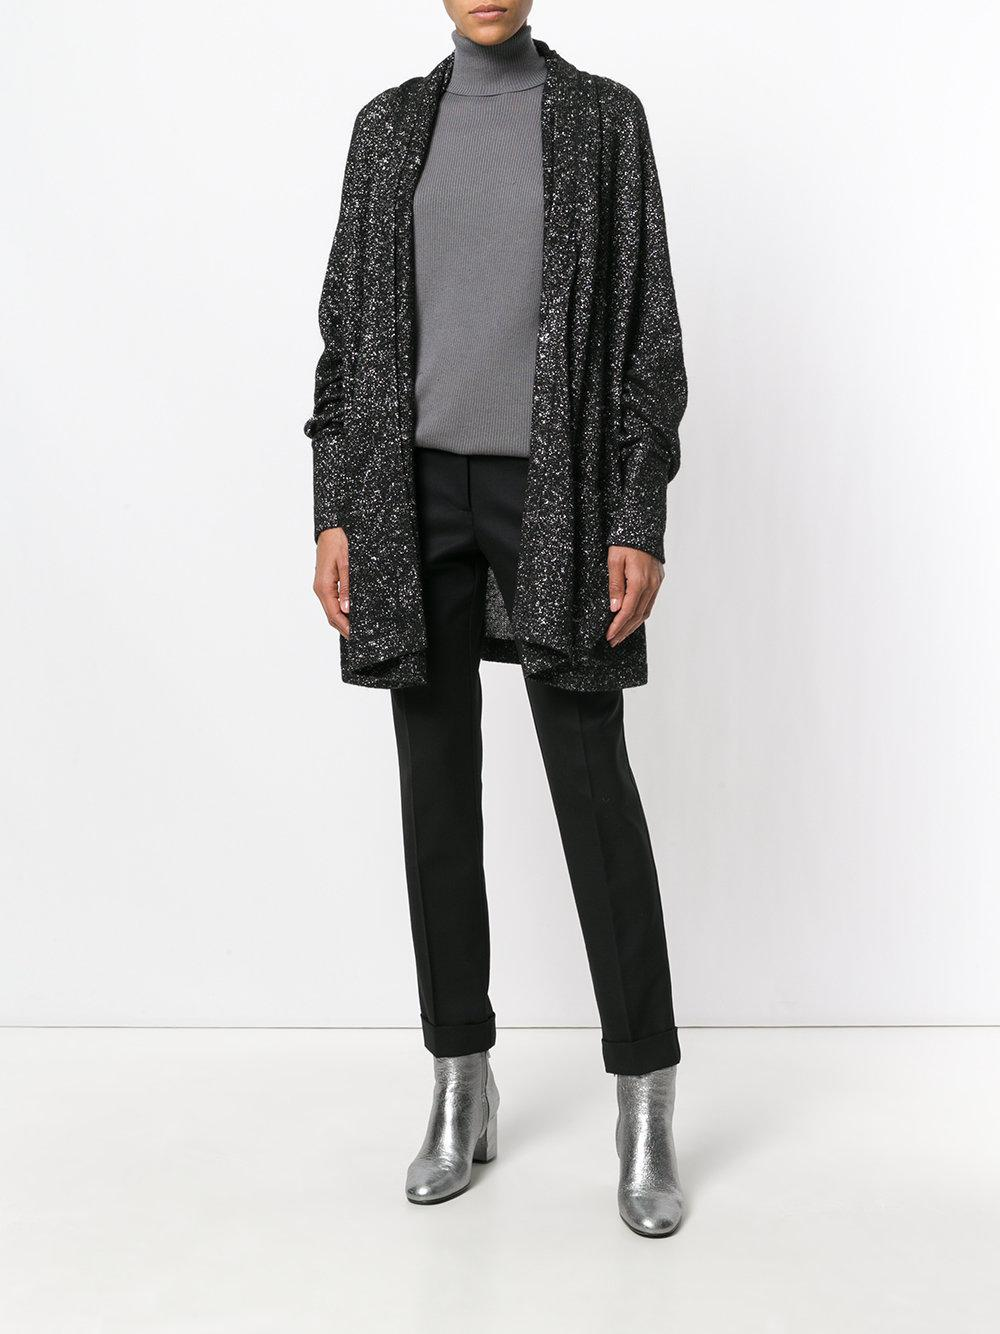 Pascal millet Oversized Glitter Cardigan in Black | Lyst